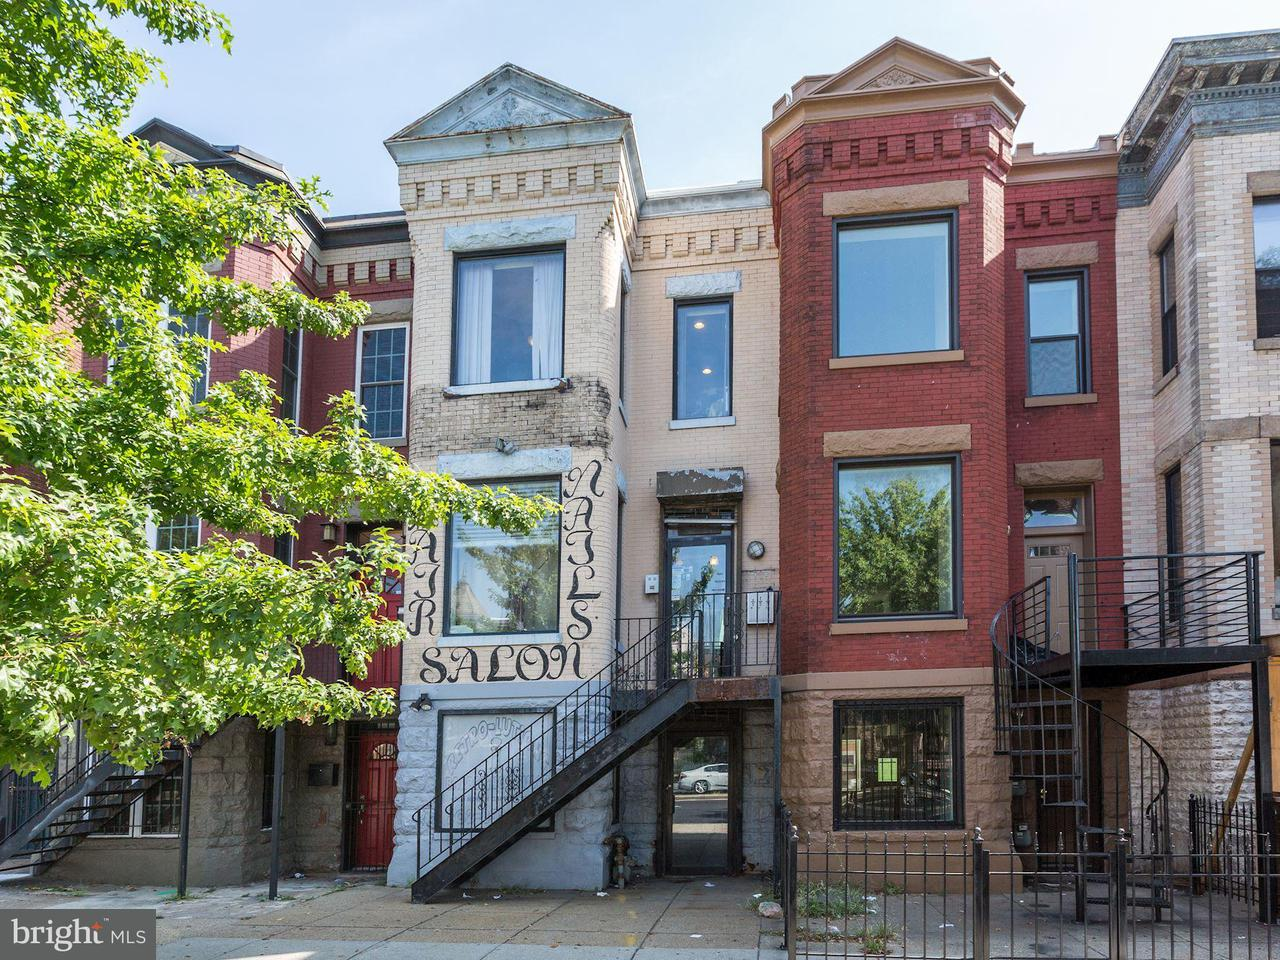 Commercial for Sale at 1709 CAPITOL ST NE 1709 CAPITOL ST NE Washington, District Of Columbia 20002 United States